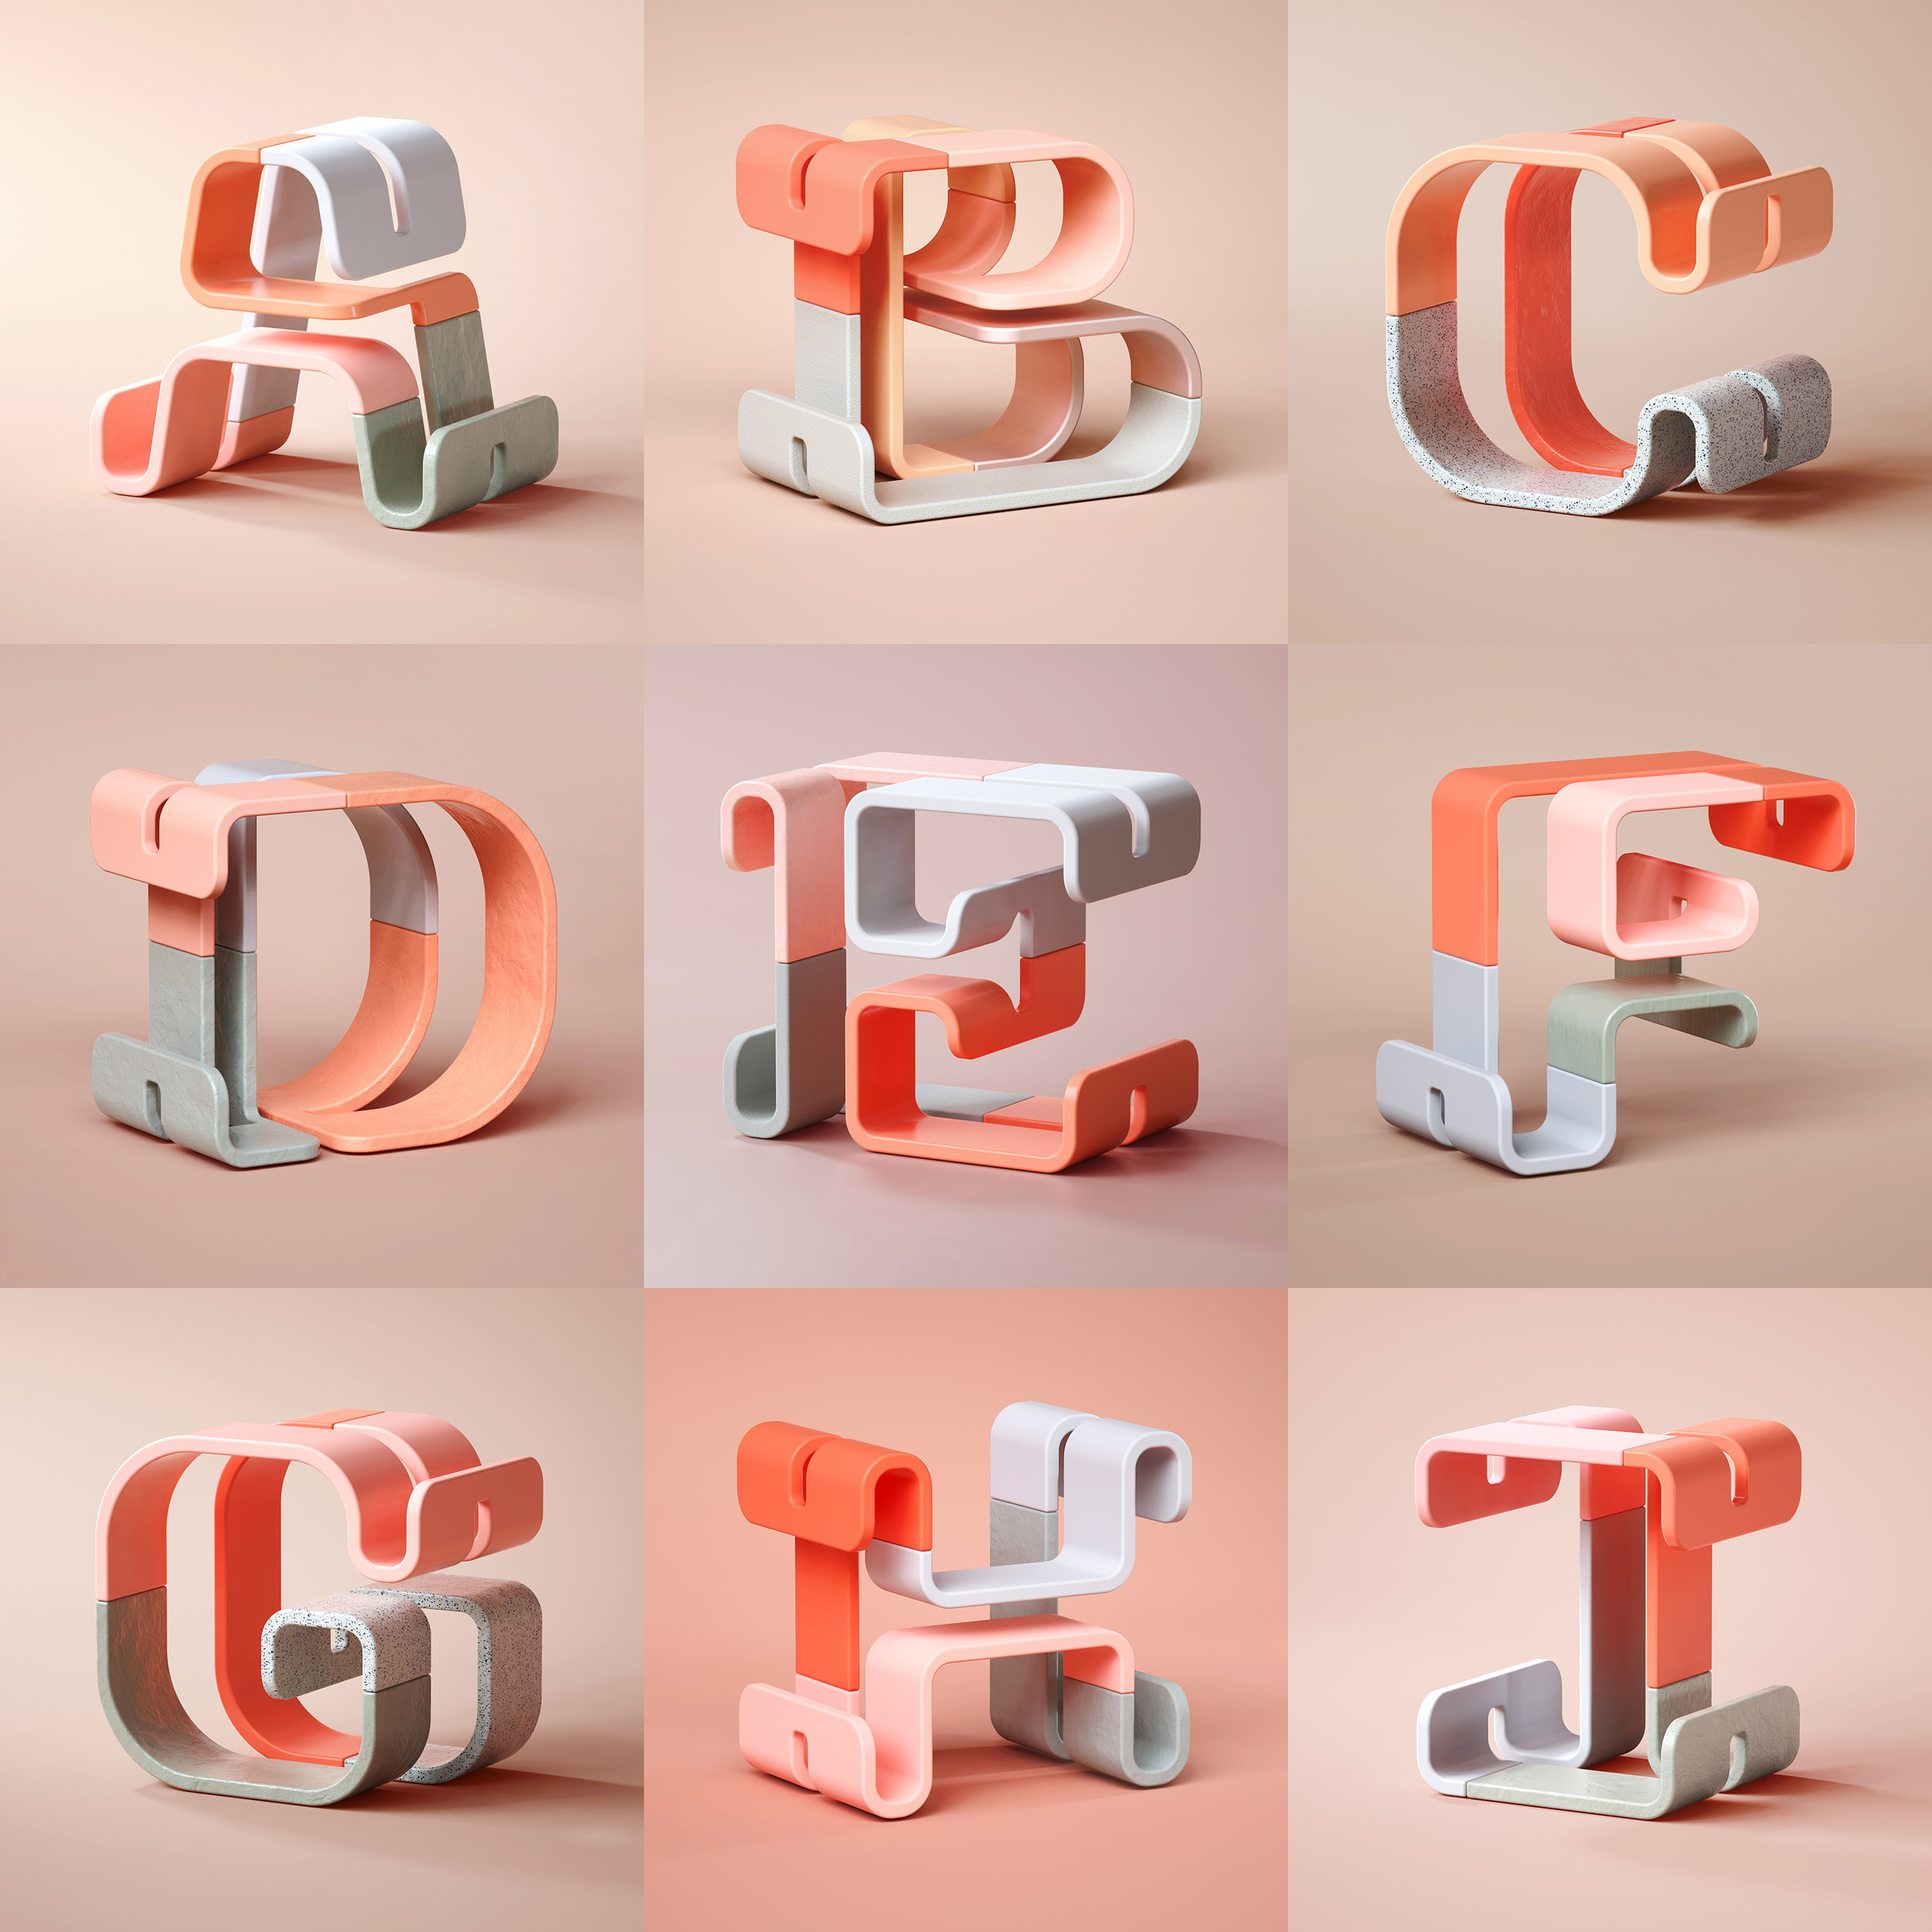 36 Days of Type 2019 - 3D Typeform letter A to I visuals by Singapore based brand strategy and creative design consultancy, BÜRO UFHO.